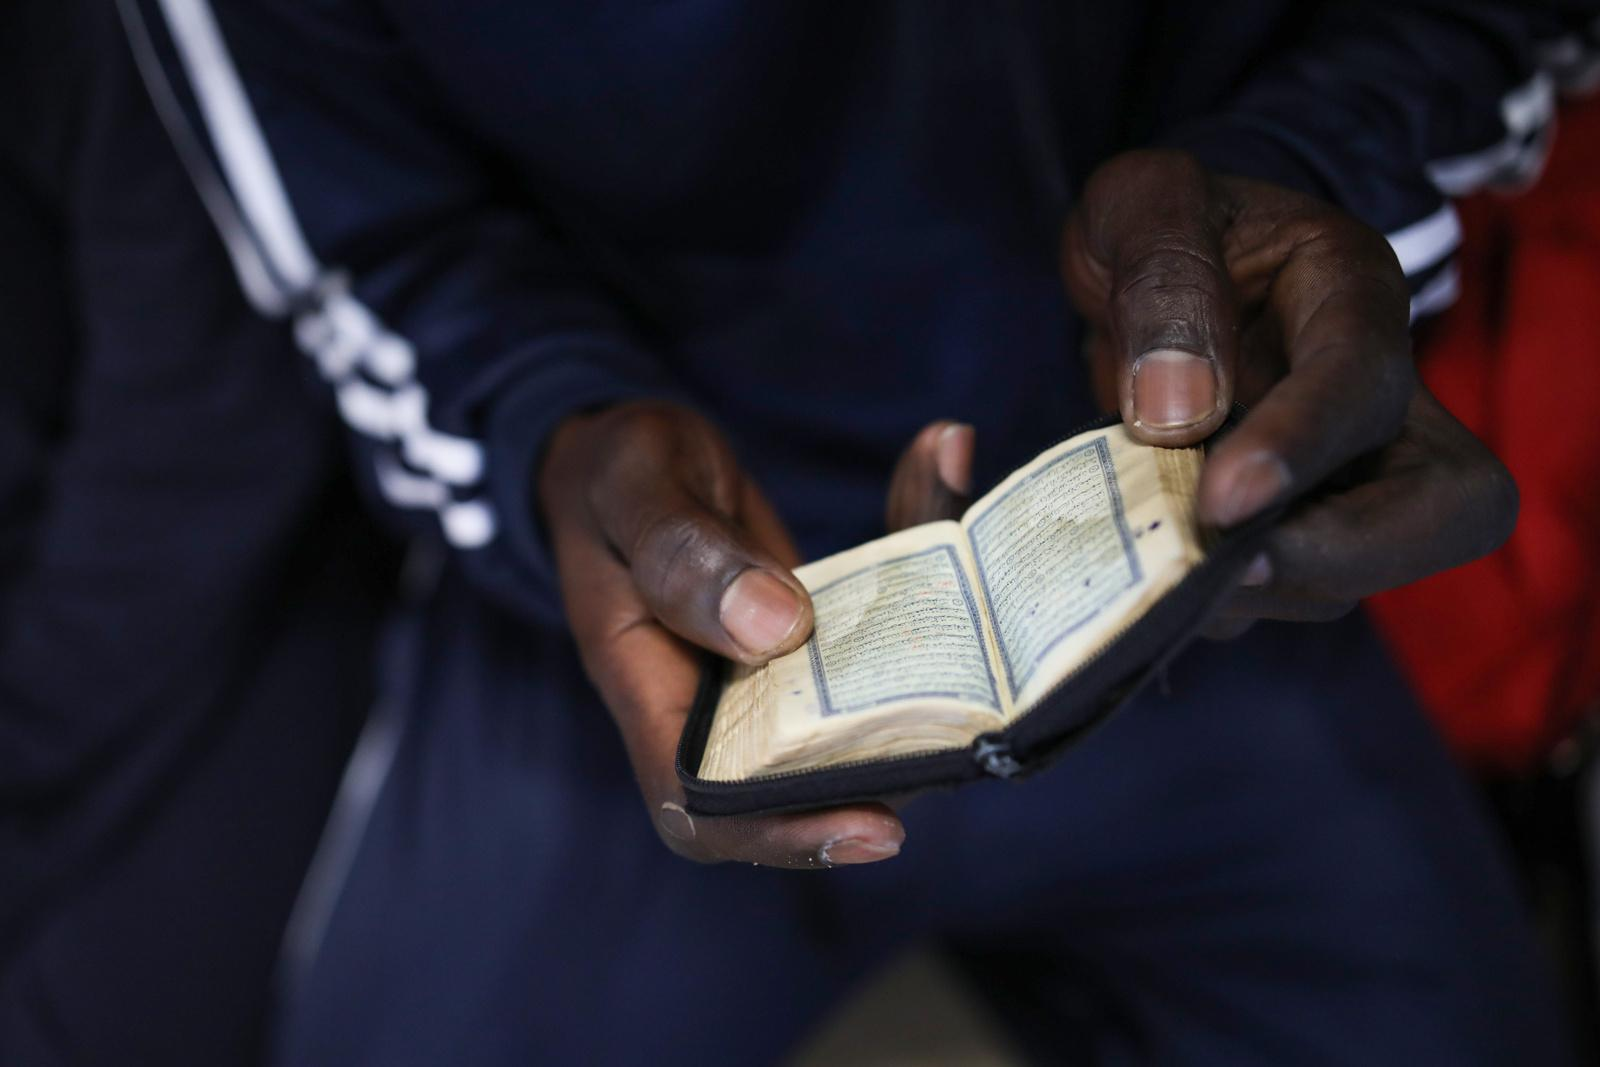 A refugee prays while reading from a small Quran, on deck of the rescue vessel 'VOS Hestia', a few hours after having been rescued from a dinghy on the Mediterranean sea off the Libyan coast, June 03, 2017. The sea journey took the lives of four migrants. The Central Mediterranean route is the world's deadliest migration route. Of the estimated 3,080 people that have died or gone missing while trying to reach Europe by sea via the three Mediterranean routes until end of November 2017, over 94% of deaths have occurred from North Africa to Italy, according to UNHCR. Over 117,000 refugees and migrants arrived in Italy by sea in 2017, about 32% less compared to 2016.